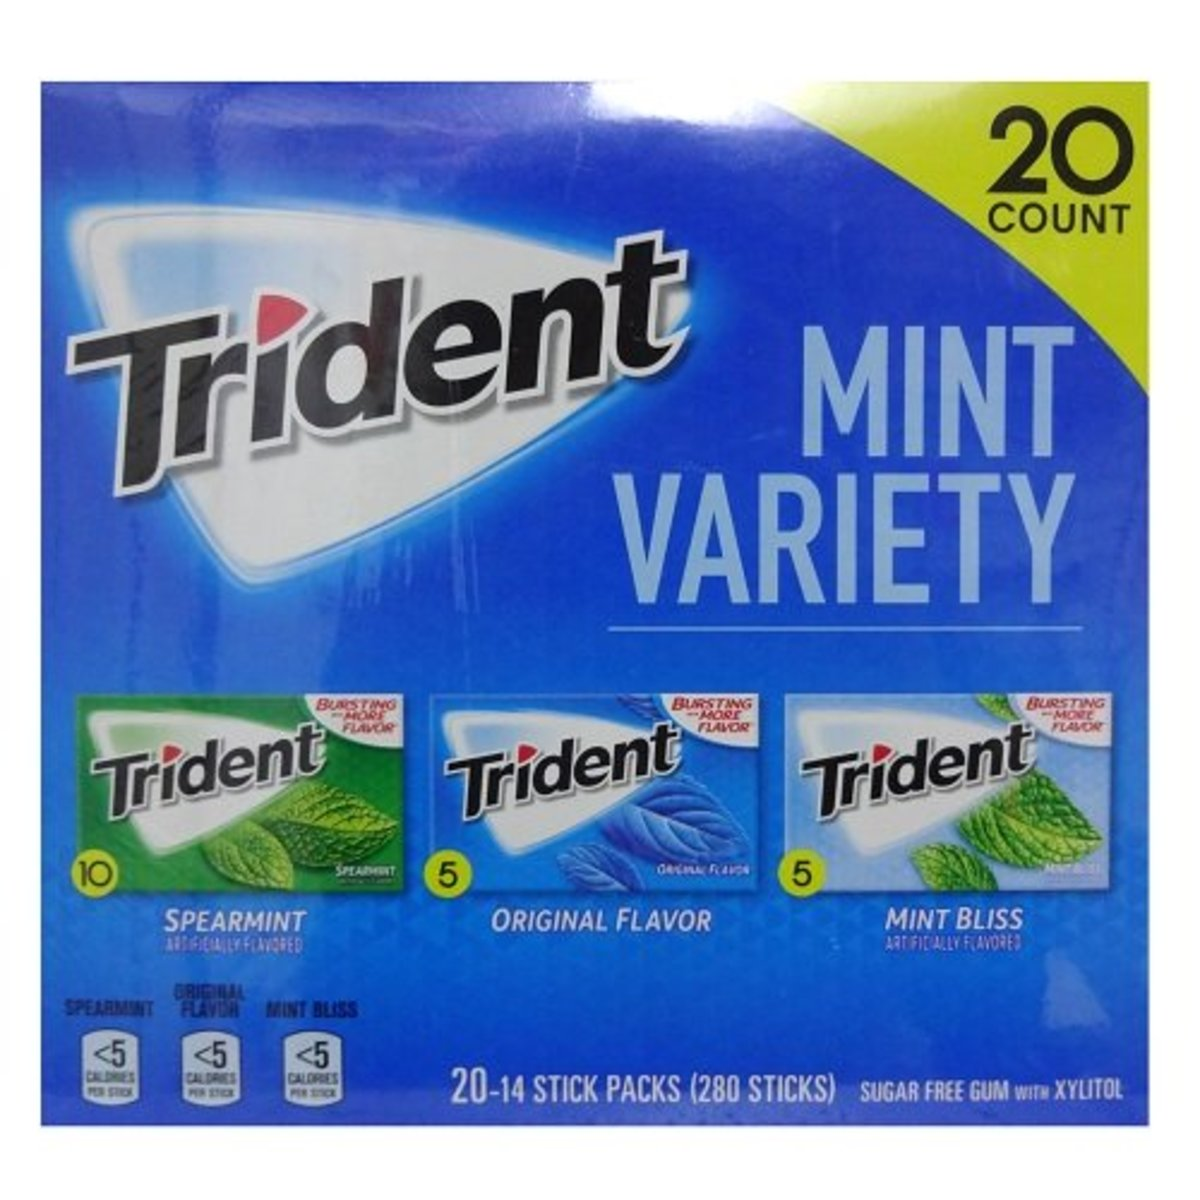 7 Different Mint Flavors of Trident Gum